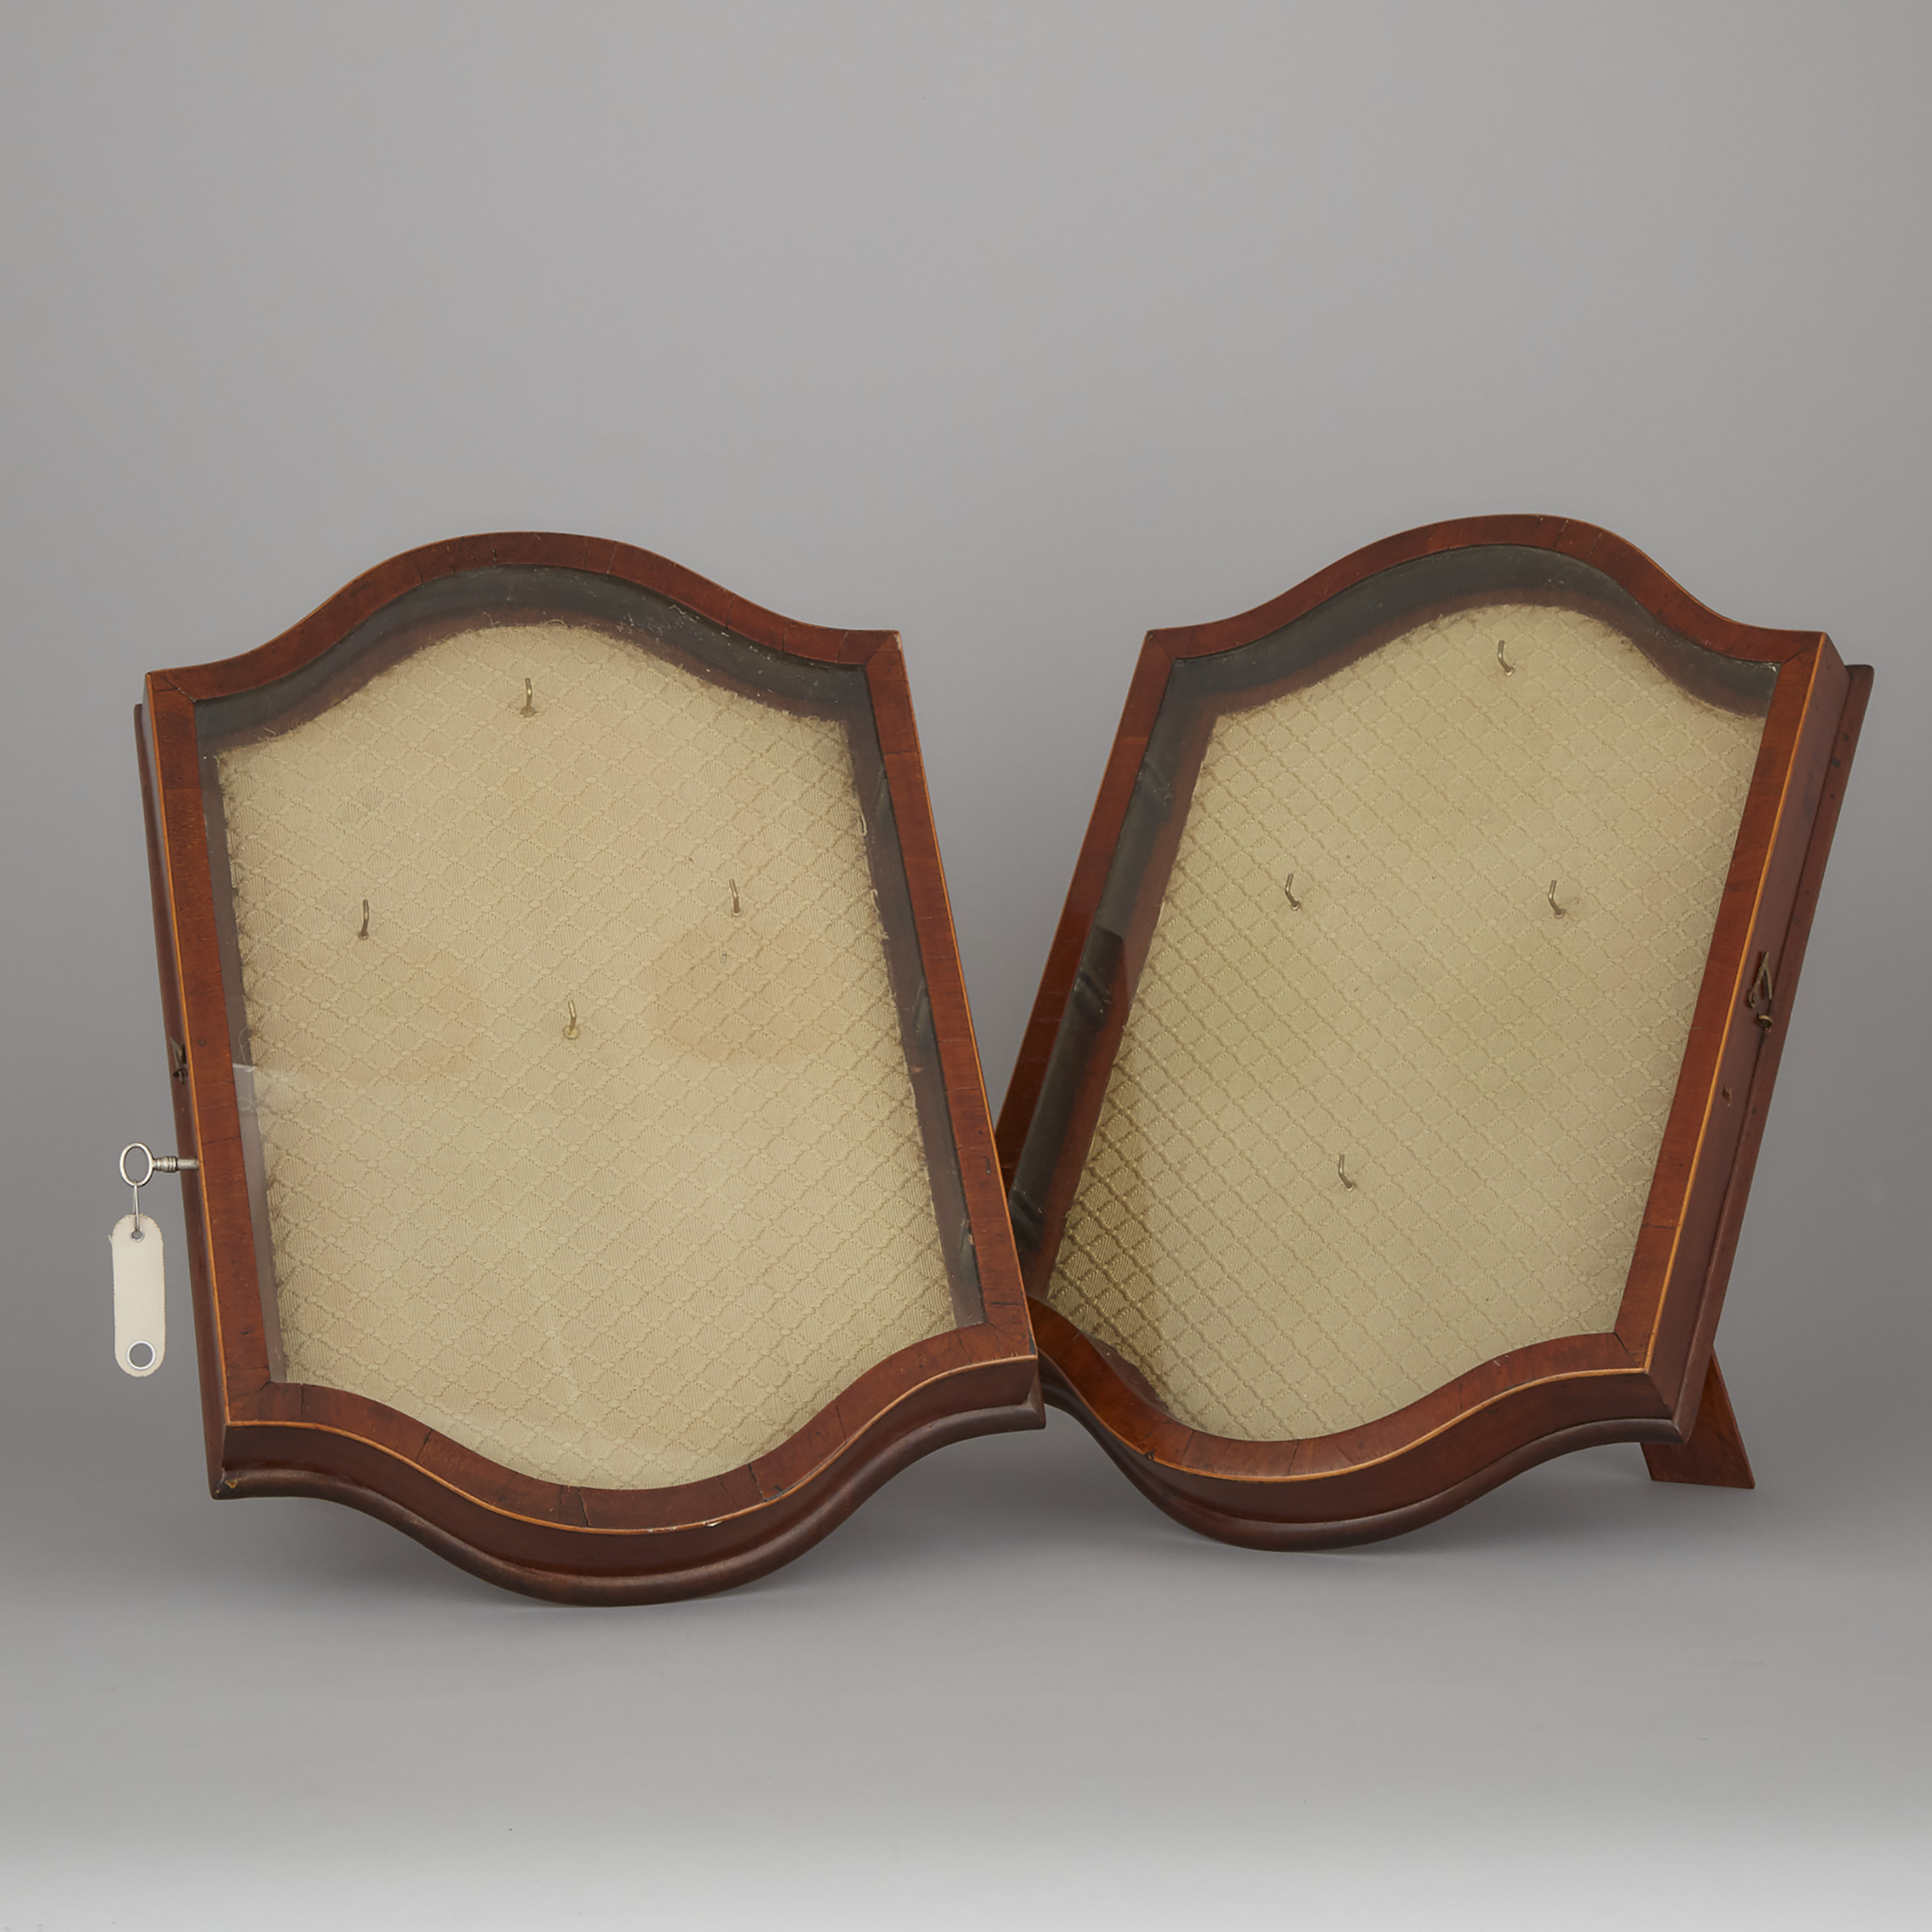 Pair of Edwardian Satinwood Strung Mahogany Table Top Display Cases, ealry 19th century